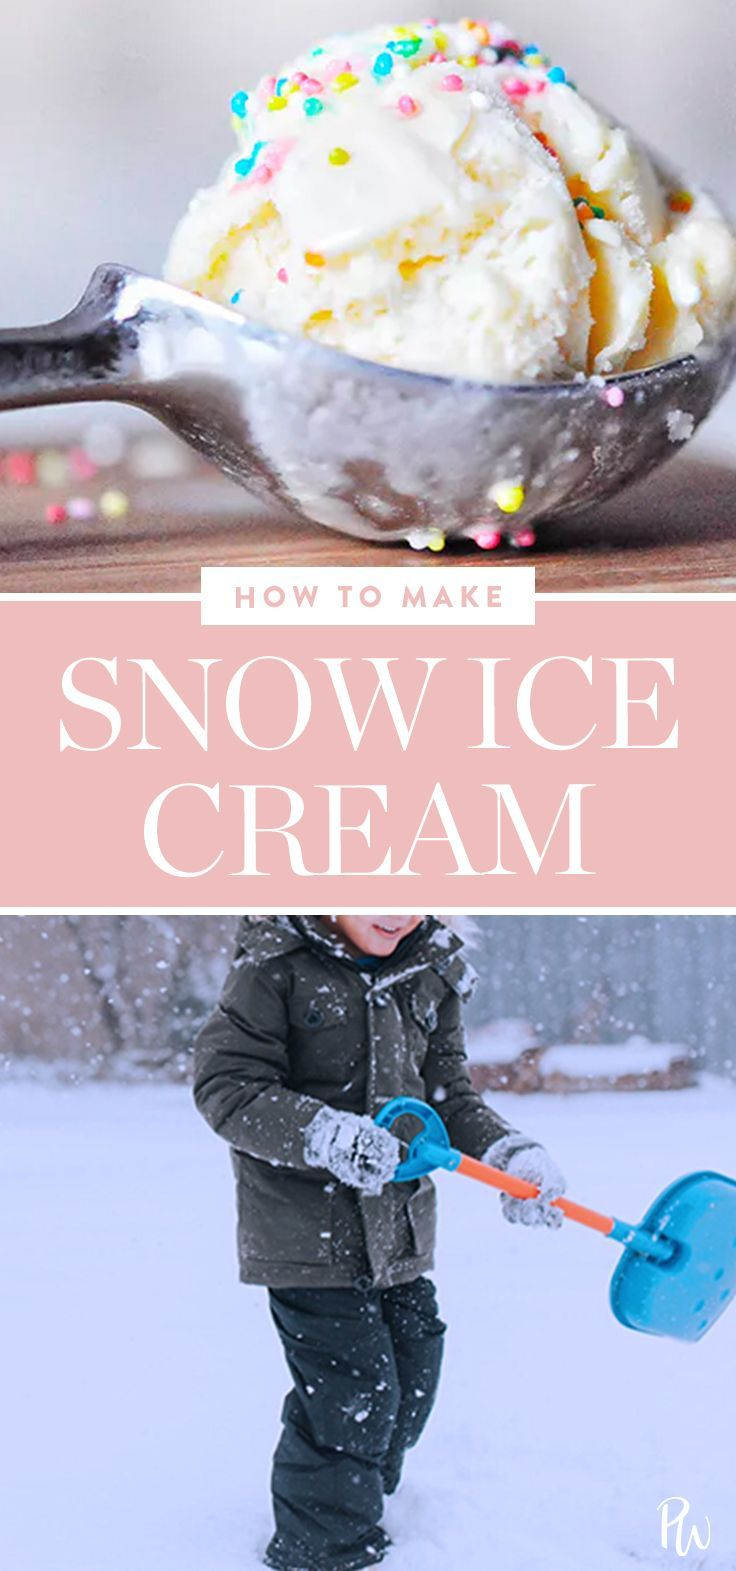 Snow Ice Cream Is the Winter Treat Your Kids Have Always Wanted. Learn to make it here. #icecream #homemade #desserts #snowicecream #snow #kids